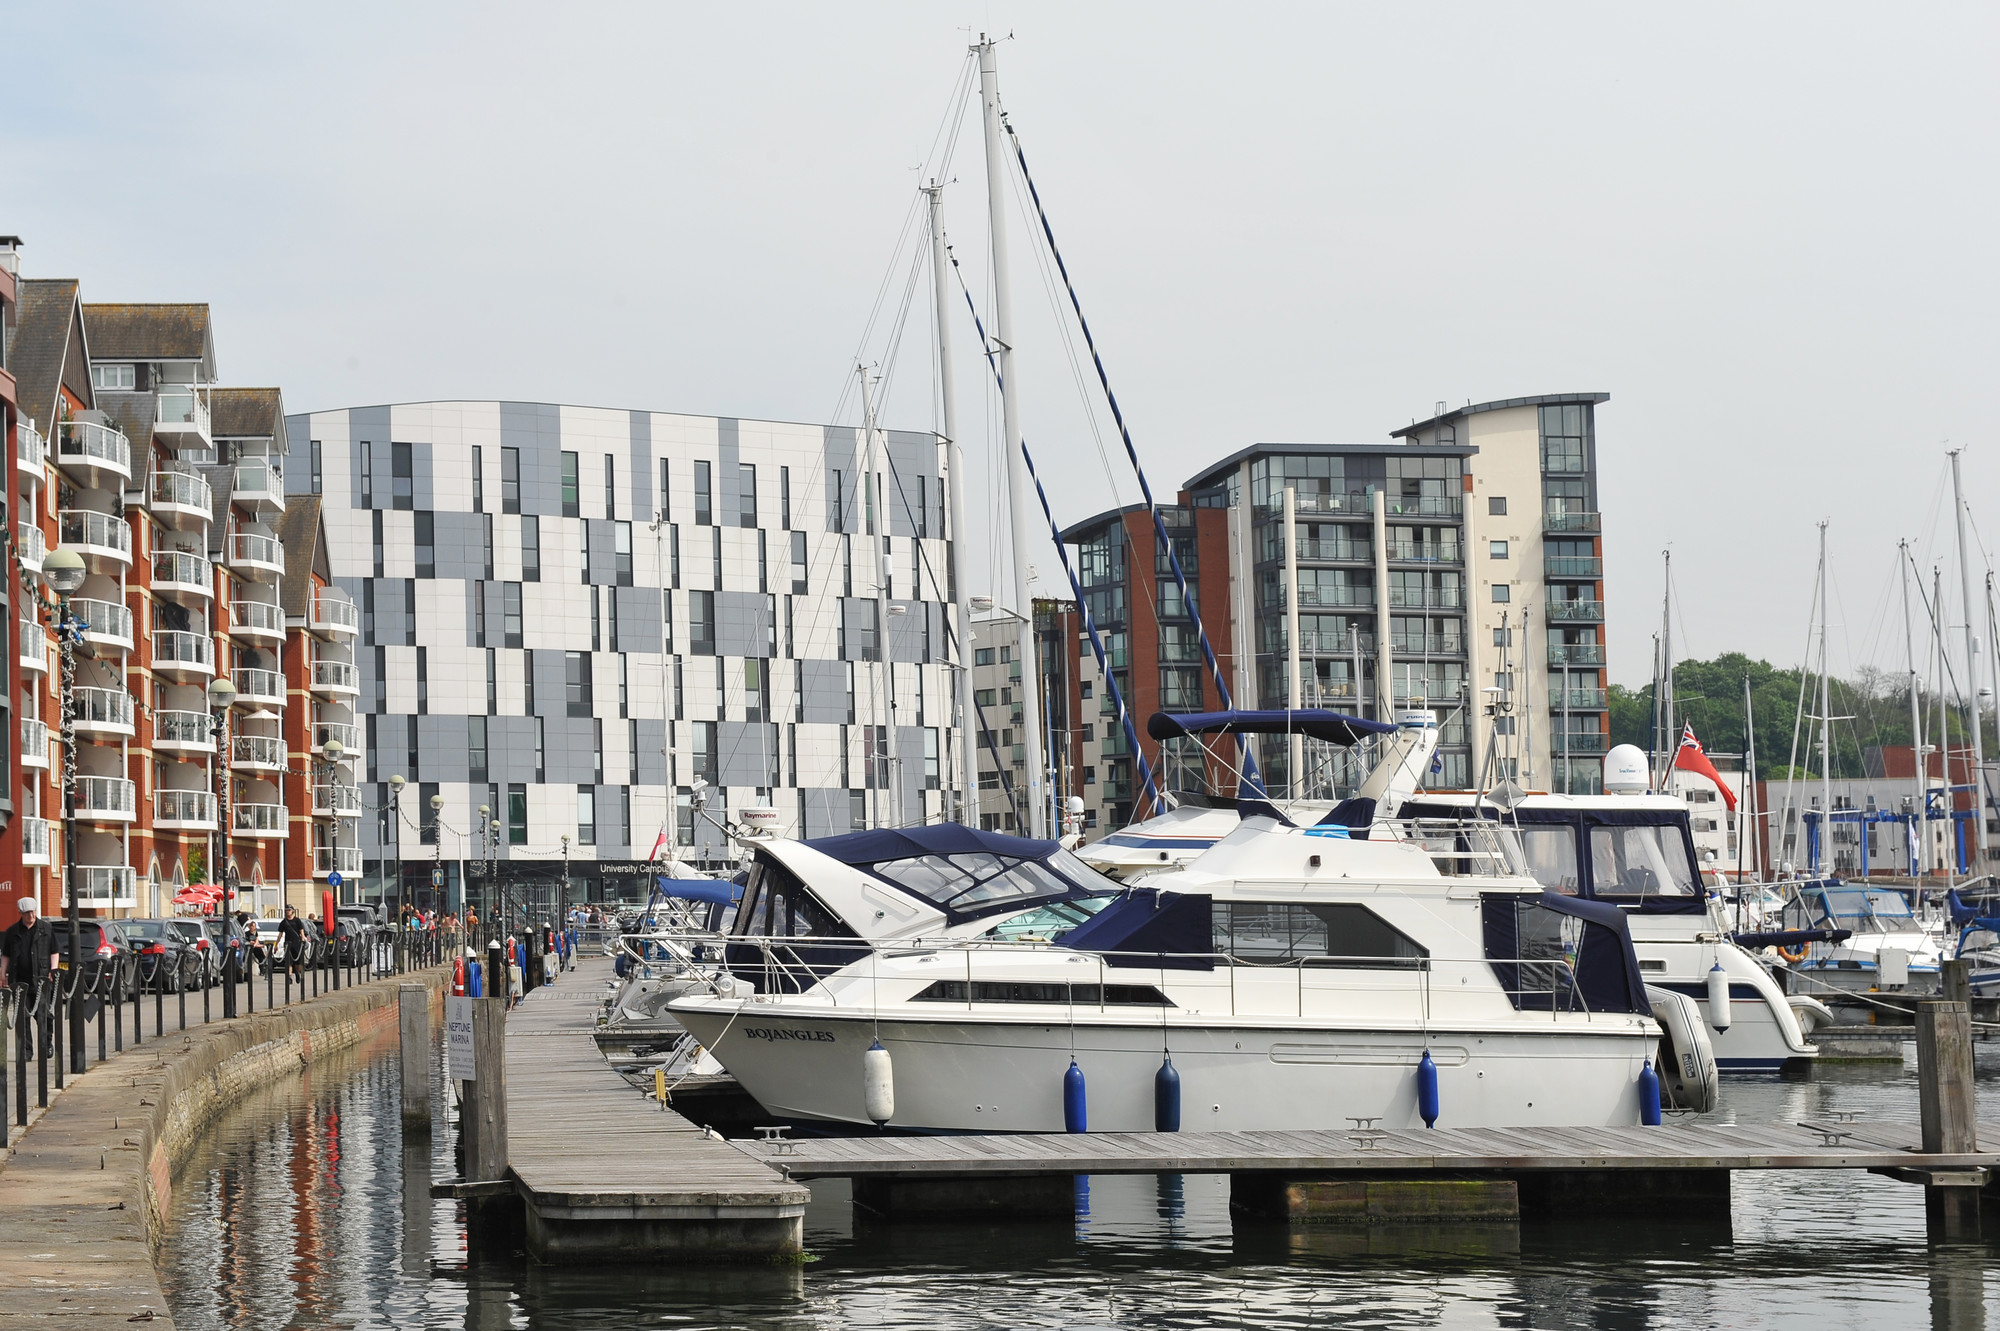 Photograph of boats, Waterfront Building, University of Suffolk